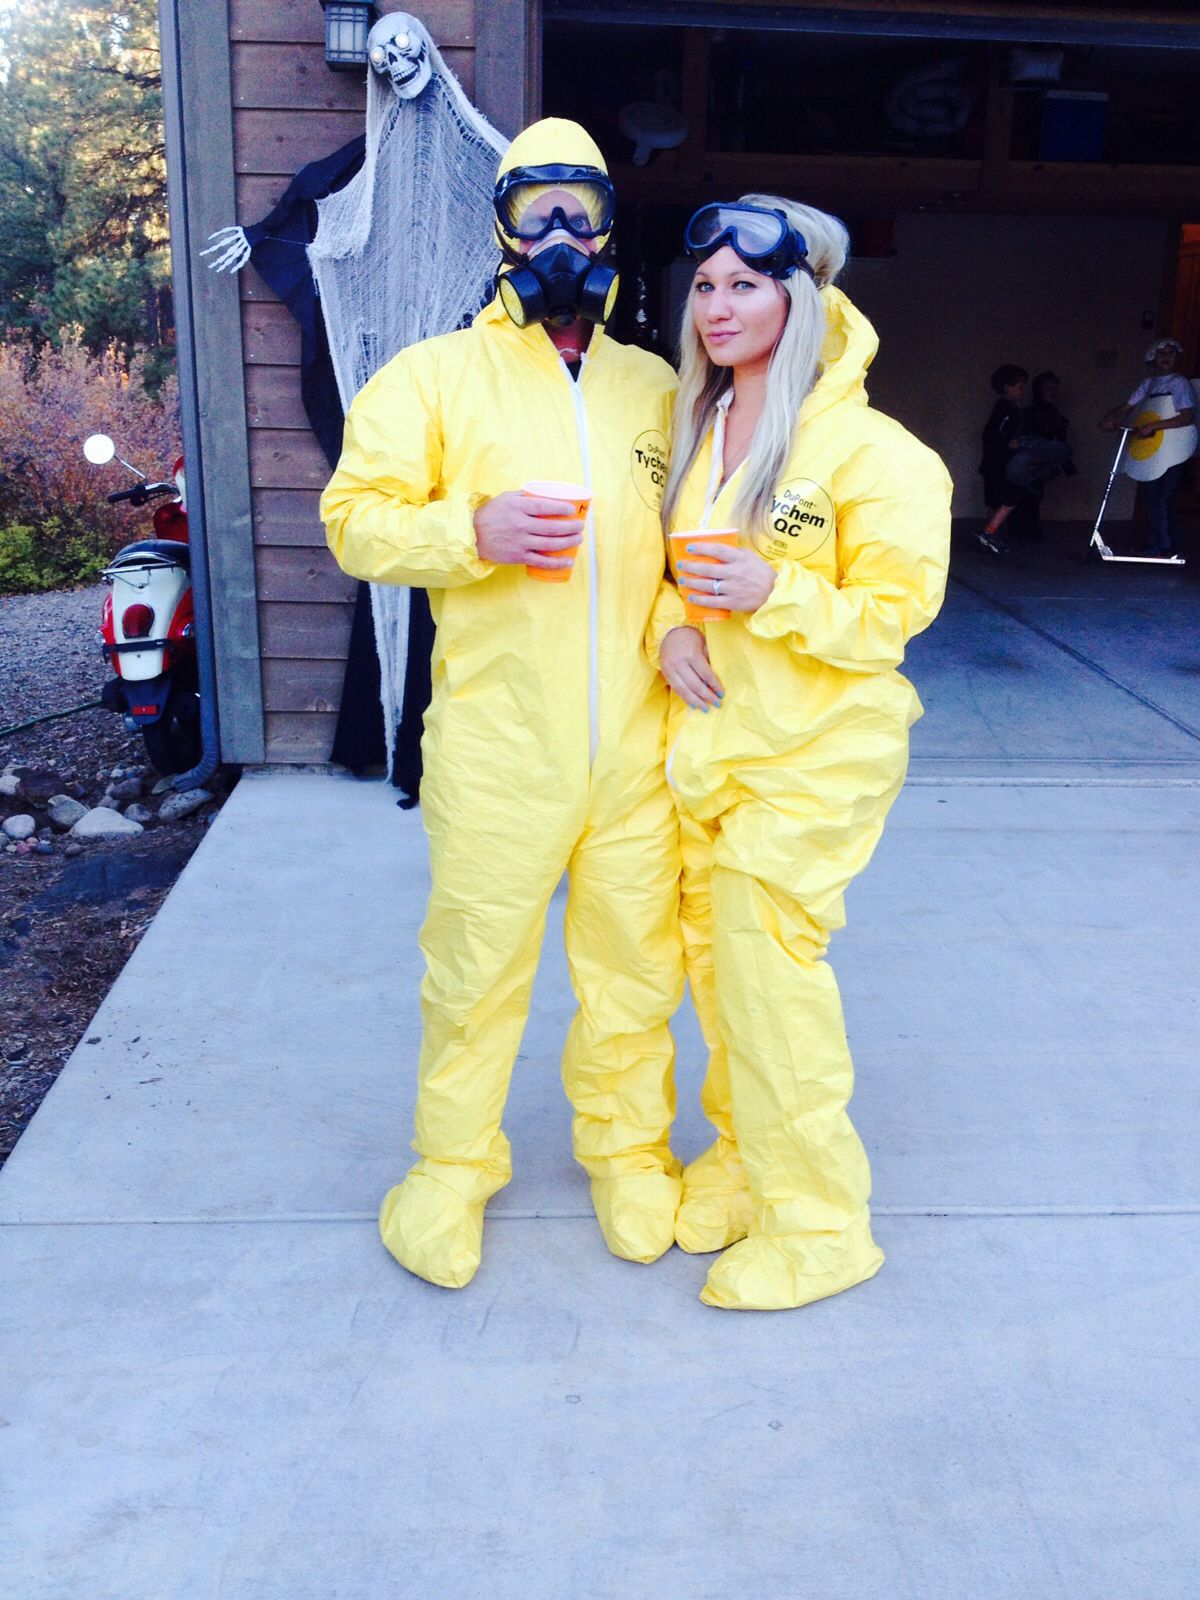 breaking bad costume halloween - Halloween Costume Breaking Bad